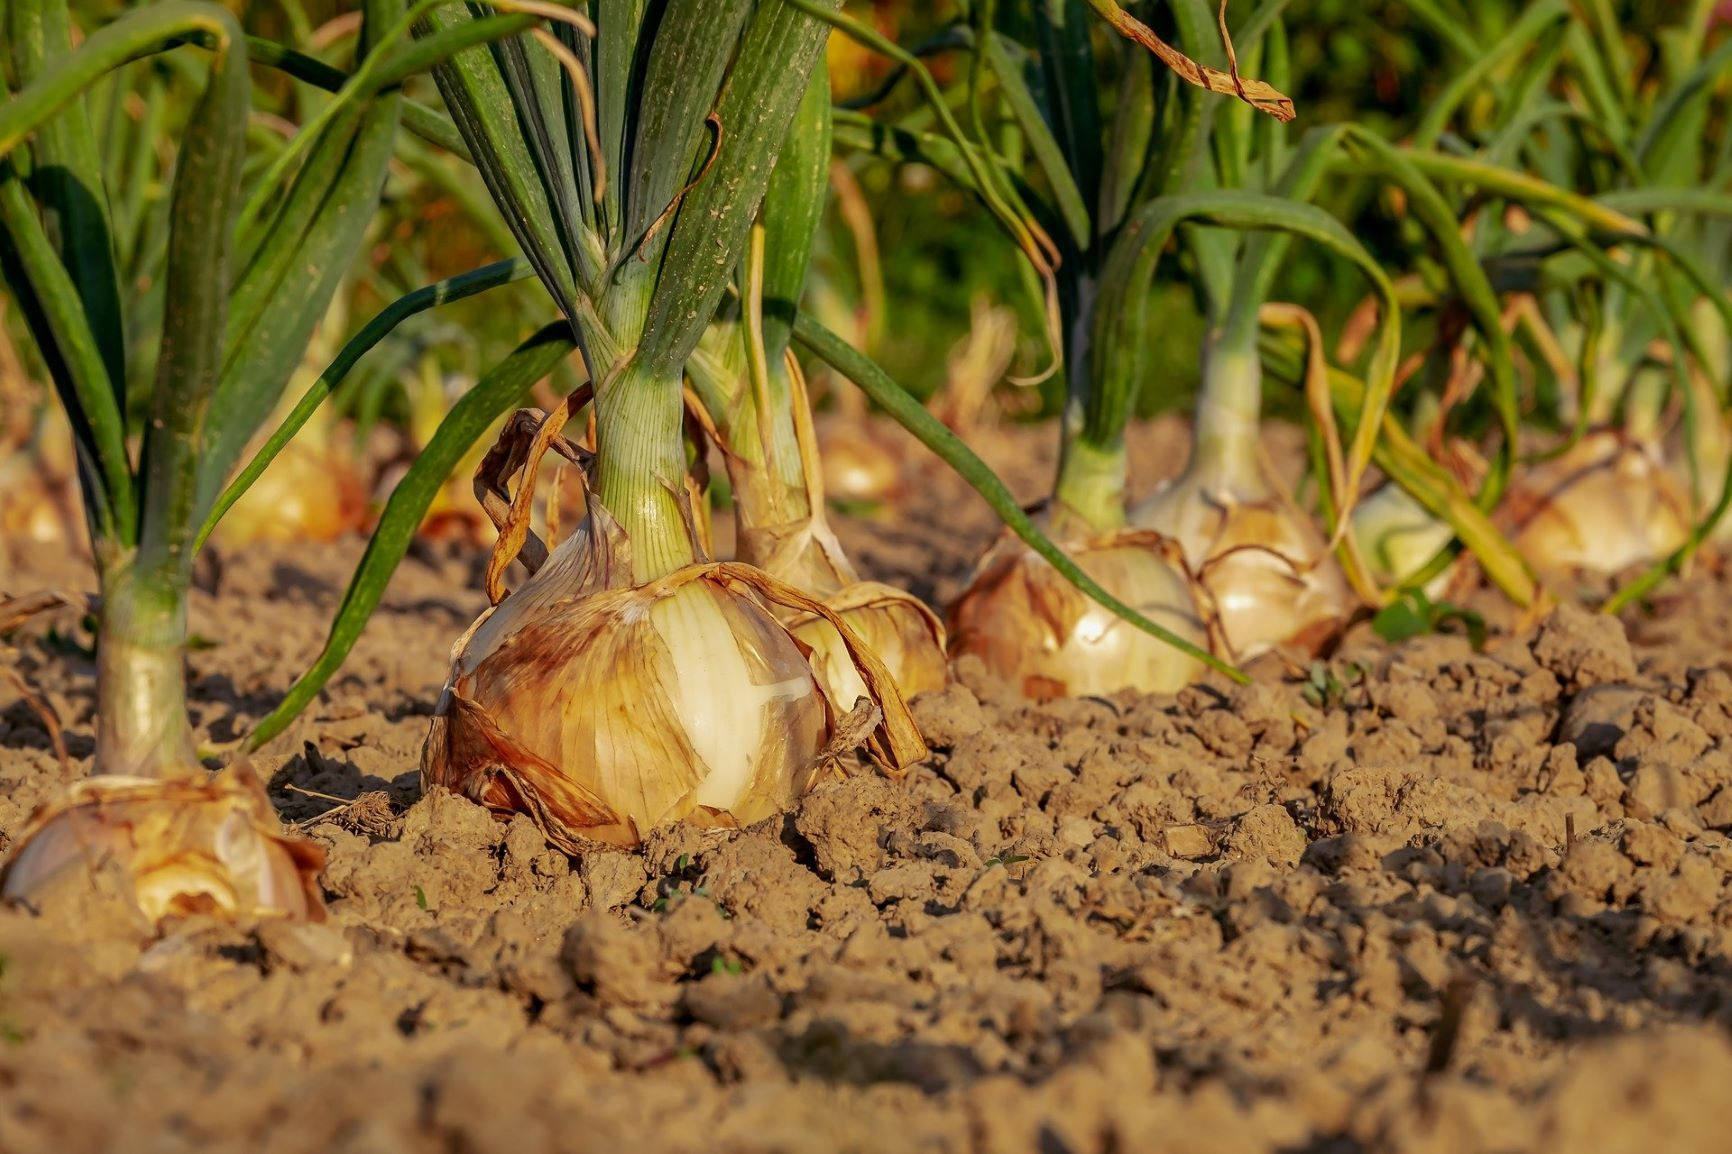 Onions in the garden